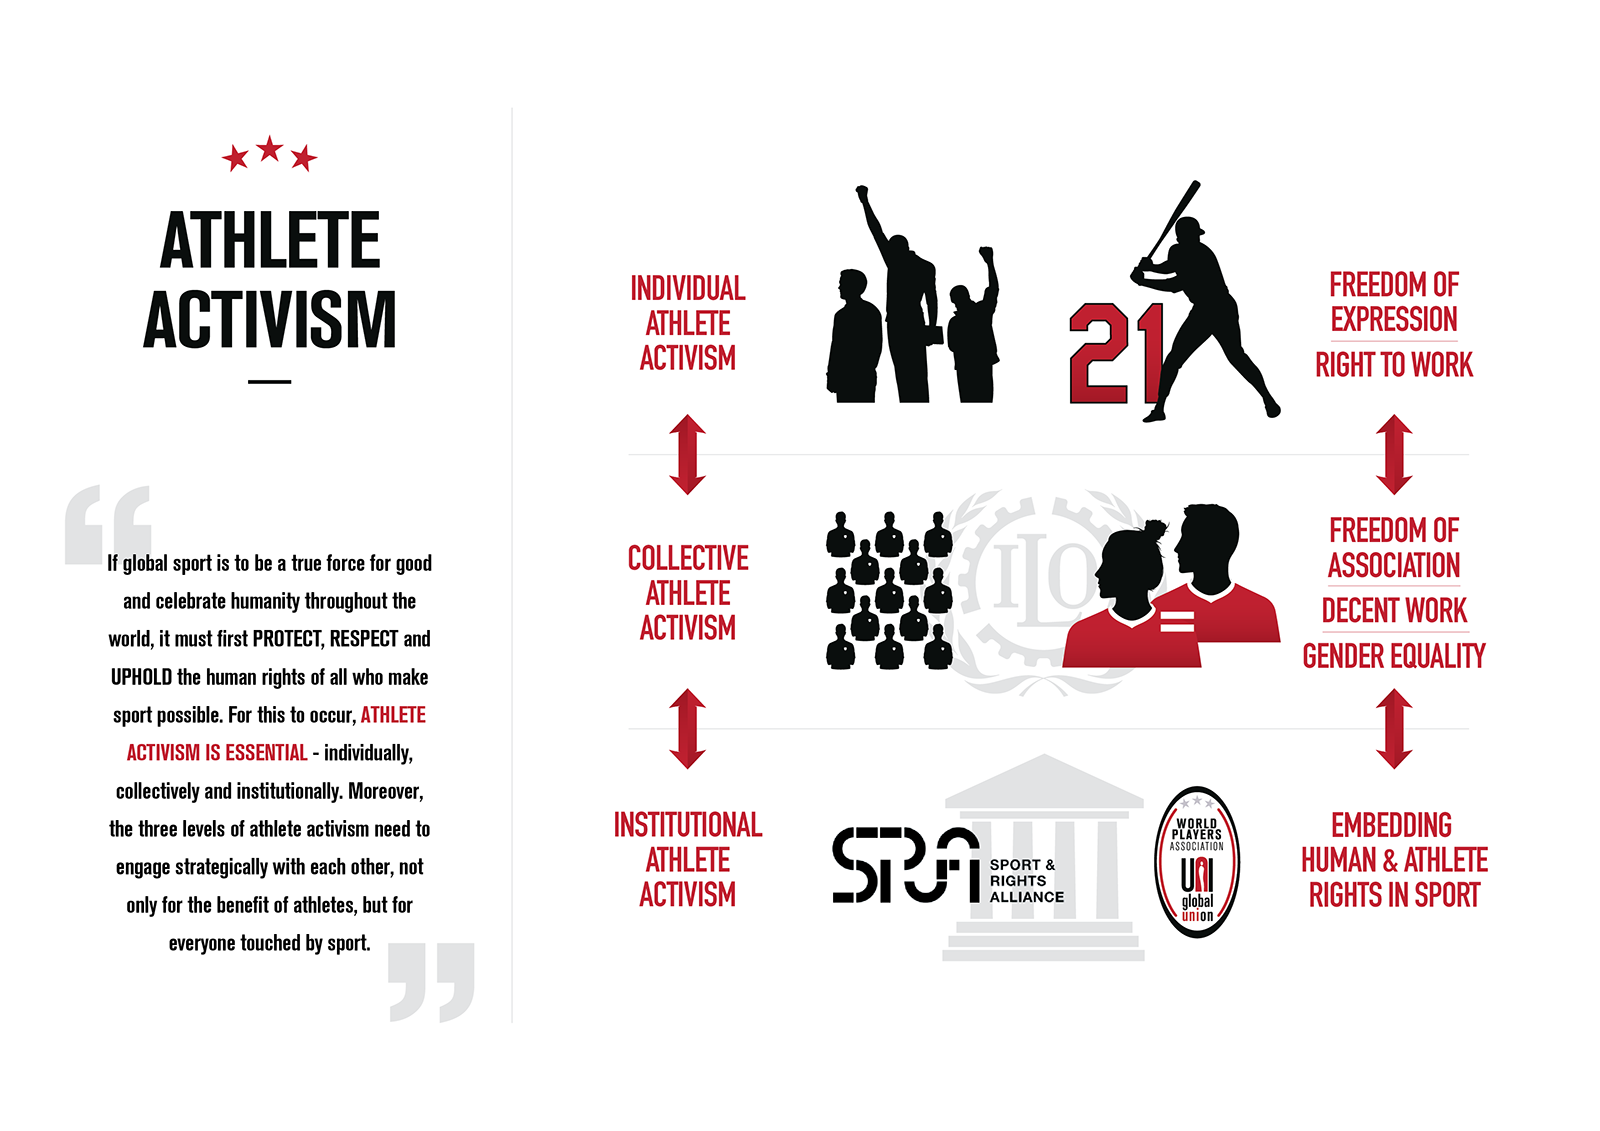 Athlete activism demands systemic change - not just words and applause